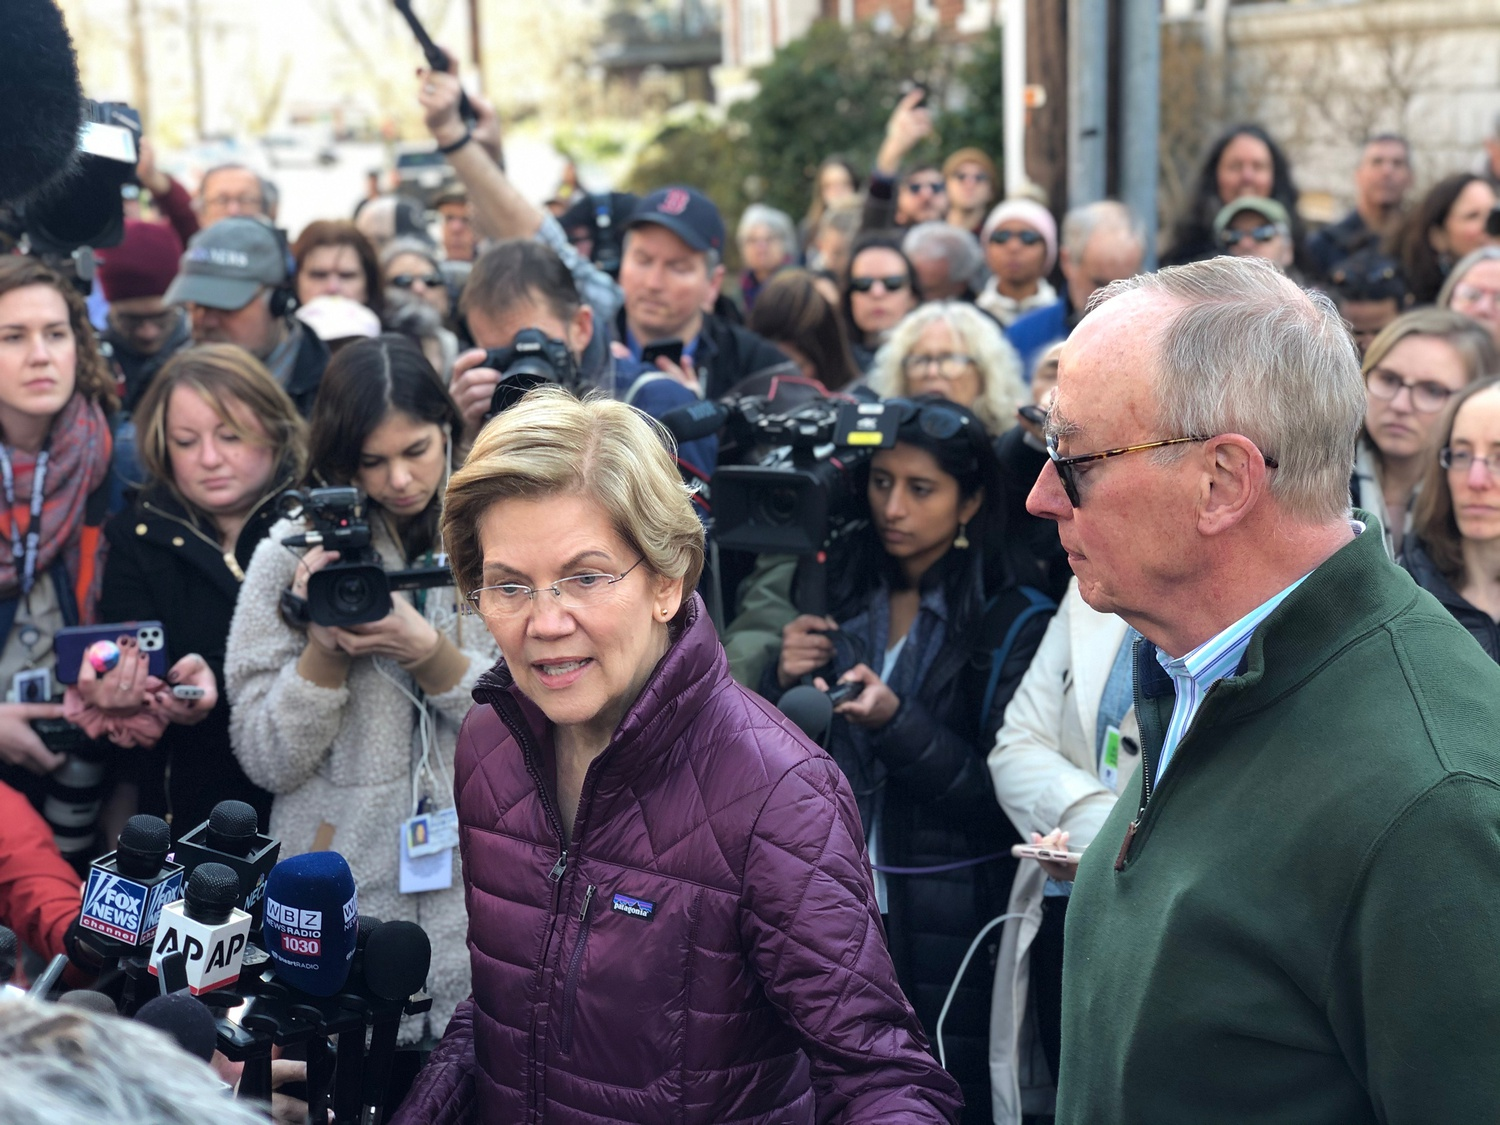 U.S. Senator Elizabeth Warren (D-Mass.) speaks at a Cambridge press conference following her announcement that she would suspend her bid for the presidency.